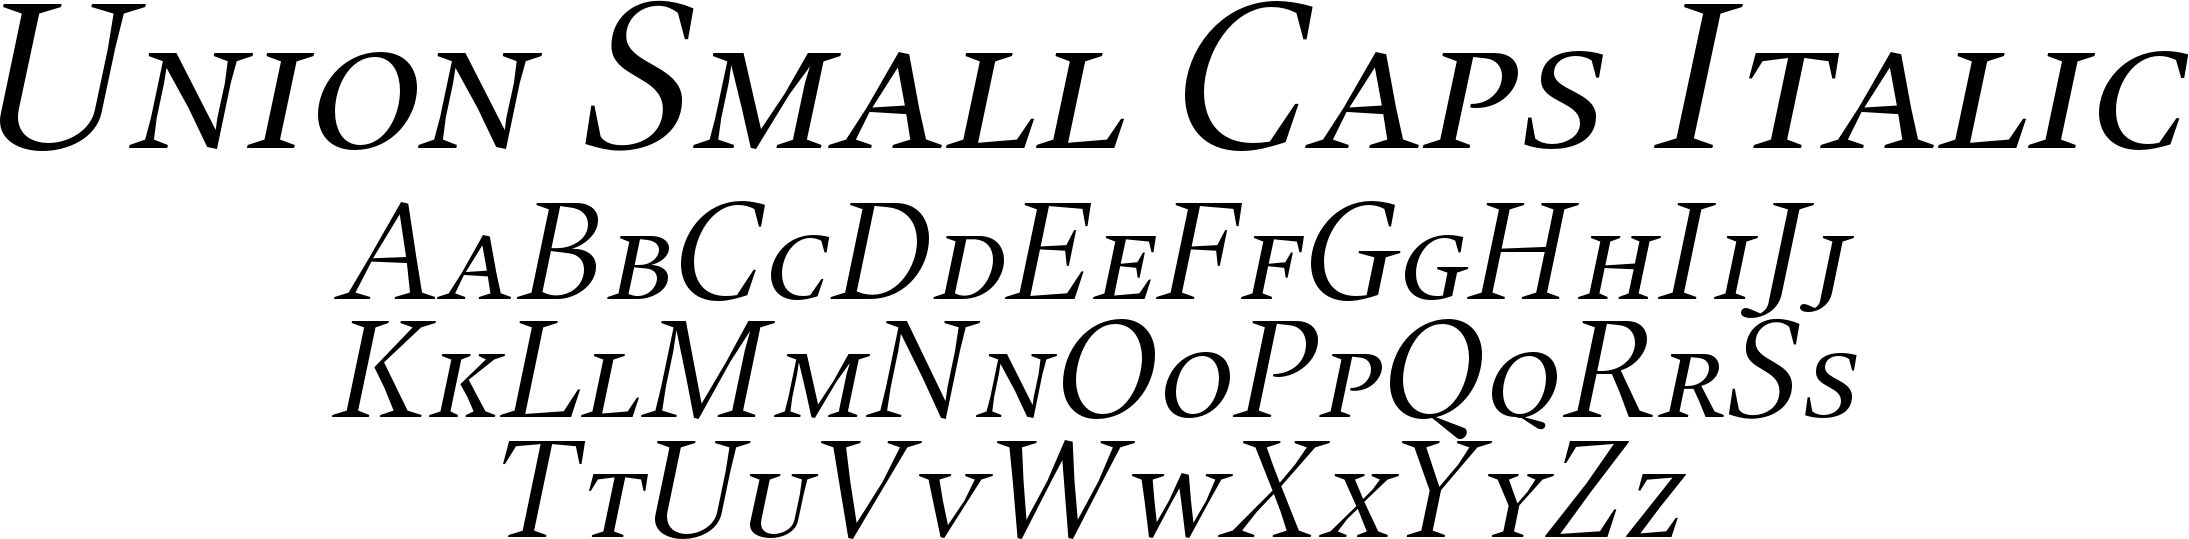 Union Small Caps Italic